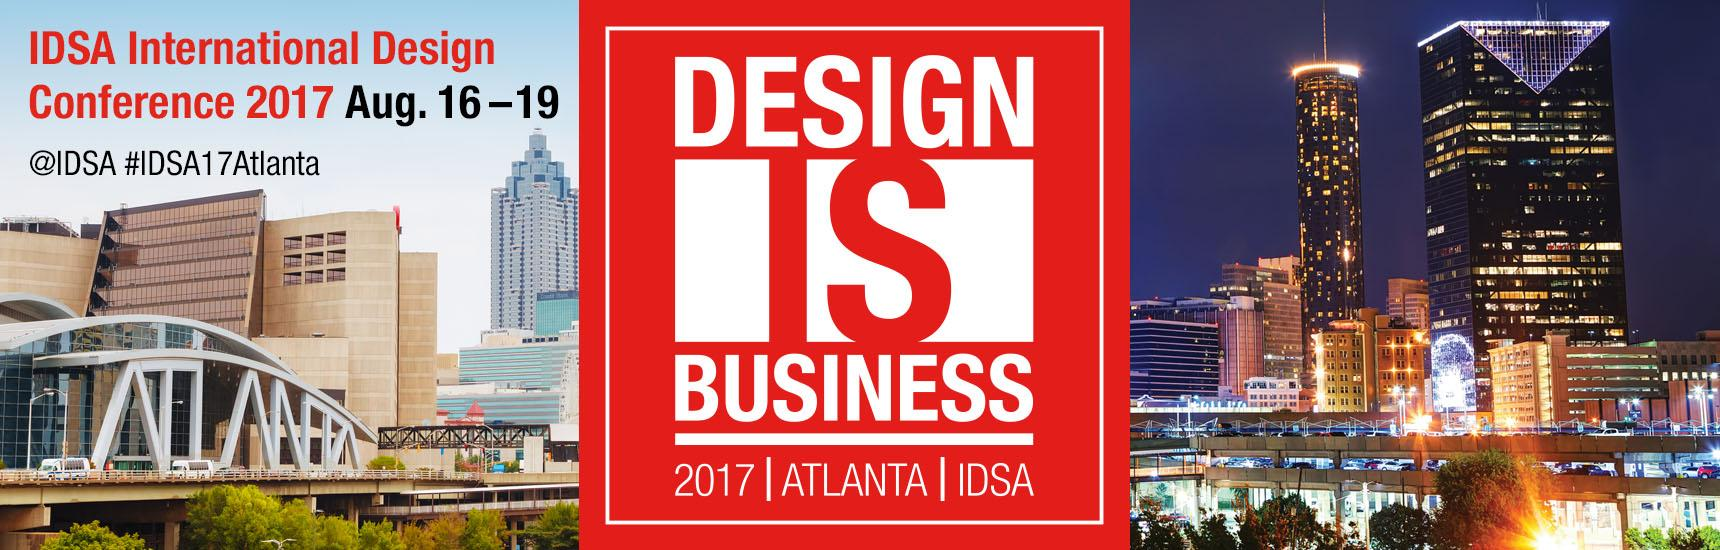 idsa international design conference 2017 design is business idsa international design conference 2017 design is business